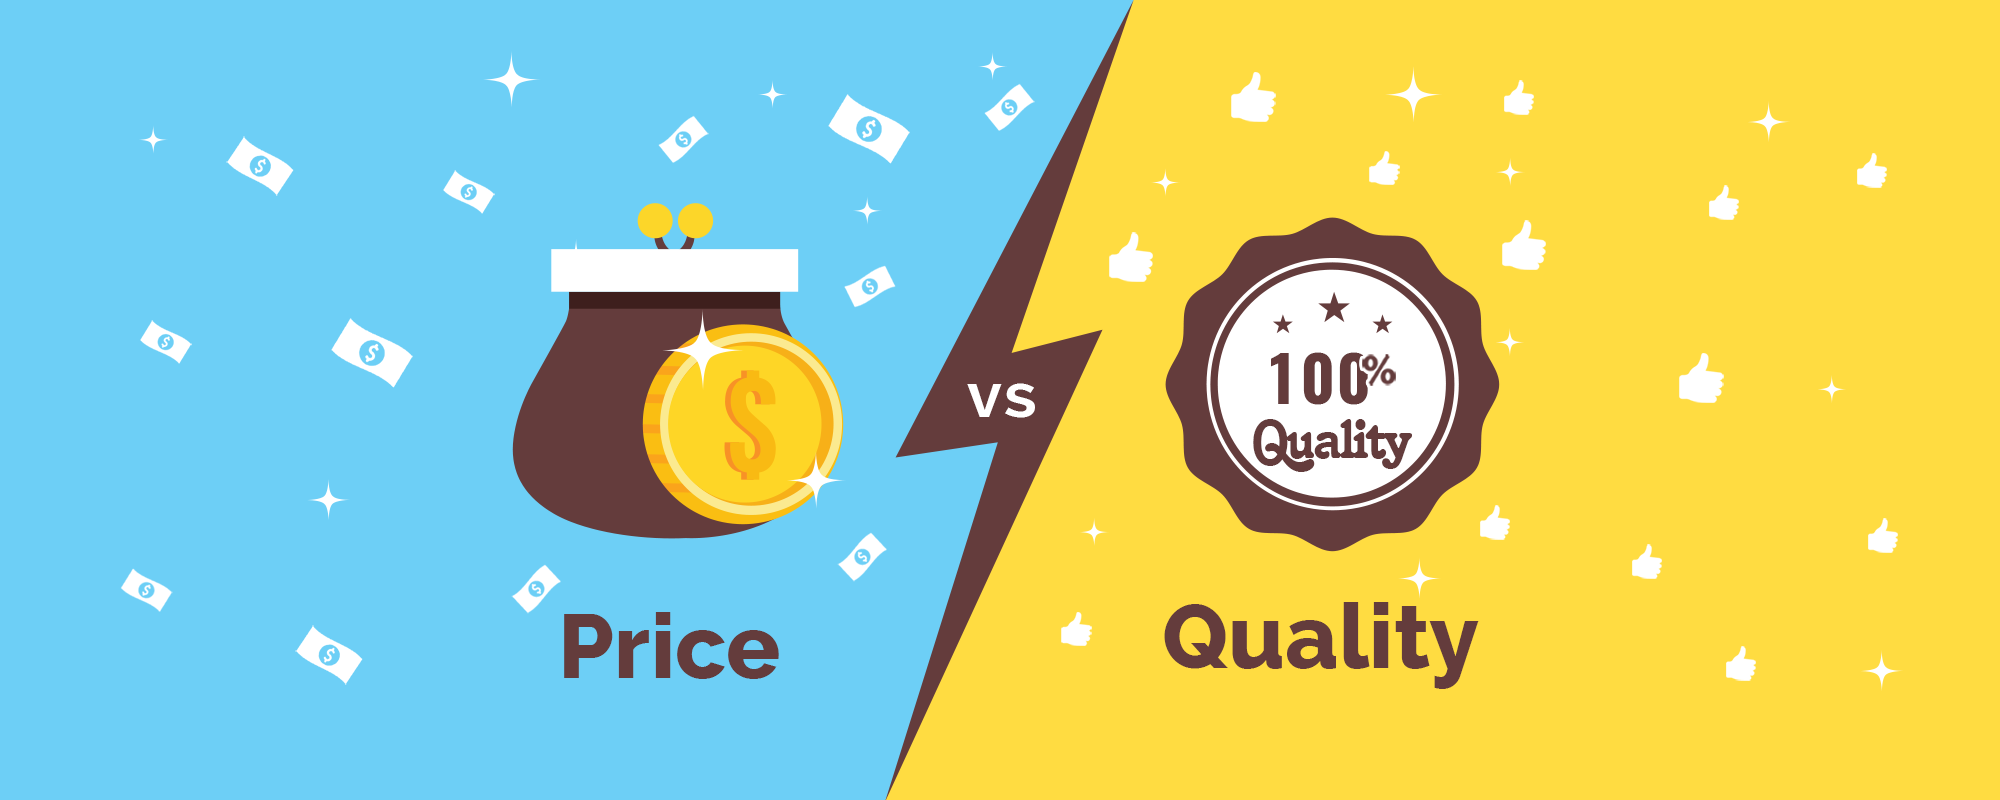 Why online businesses must choose quality over pricing?